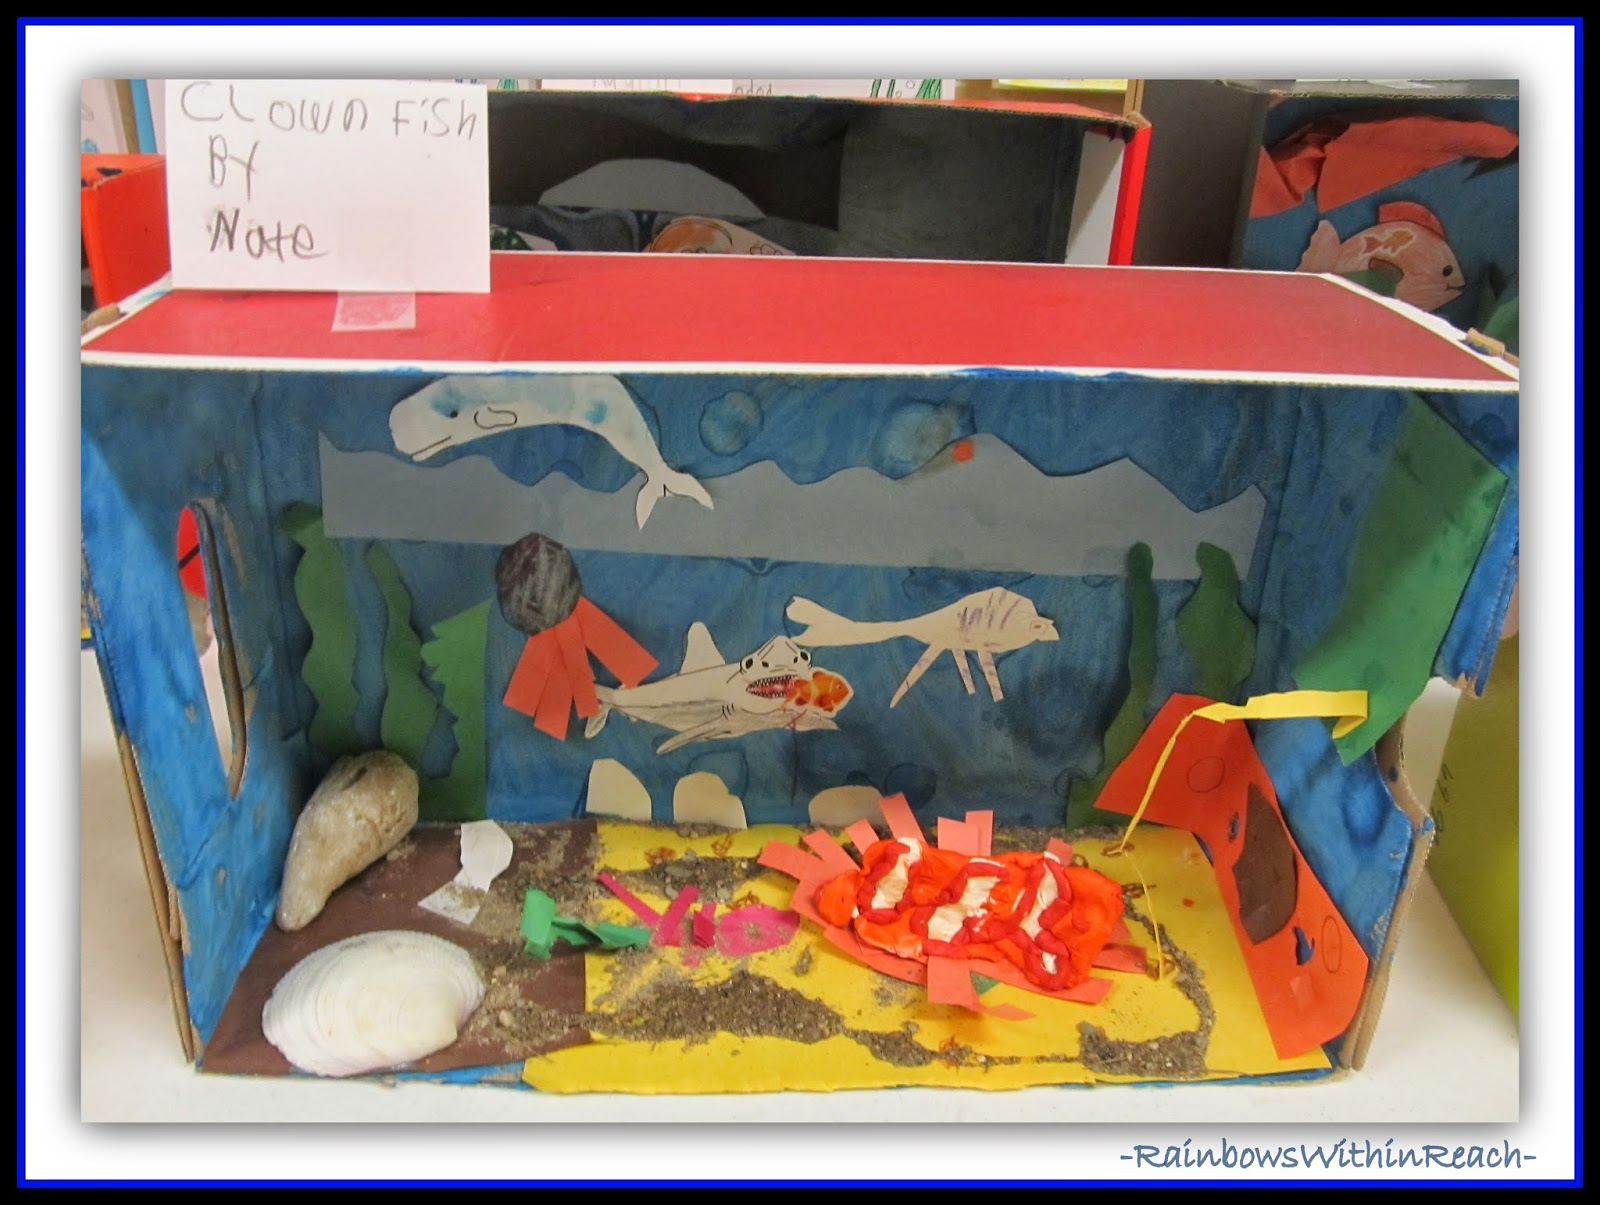 Ocean Theme Dioramas from Ocean RoundUP at RainbowsWithinReach